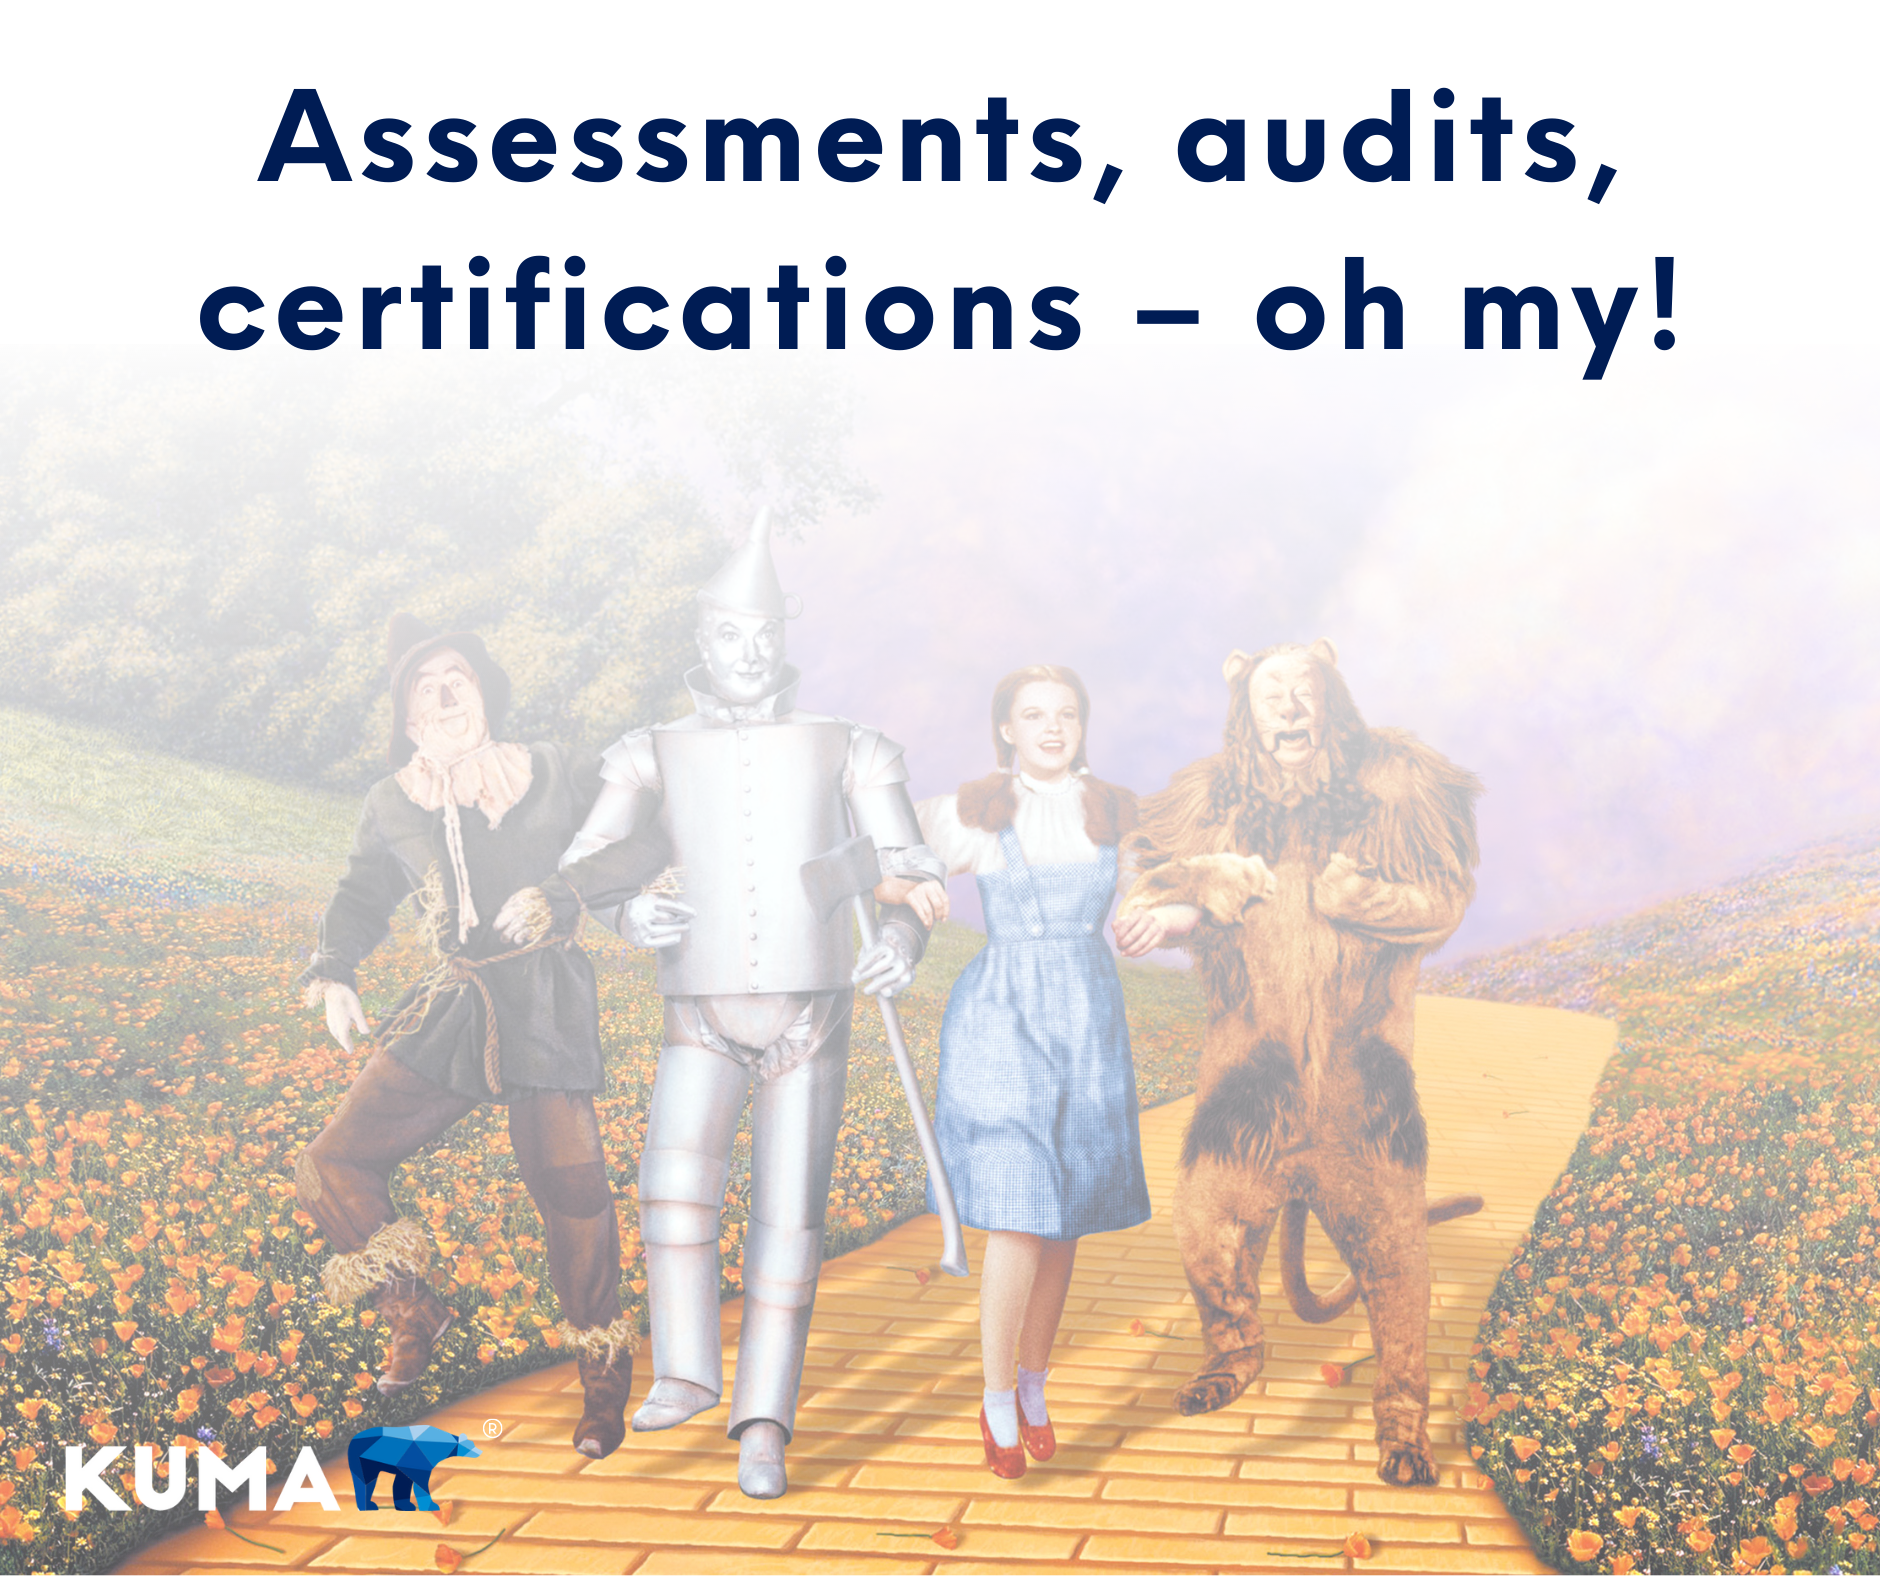 Assessments, Audits, Certifications – Oh My!